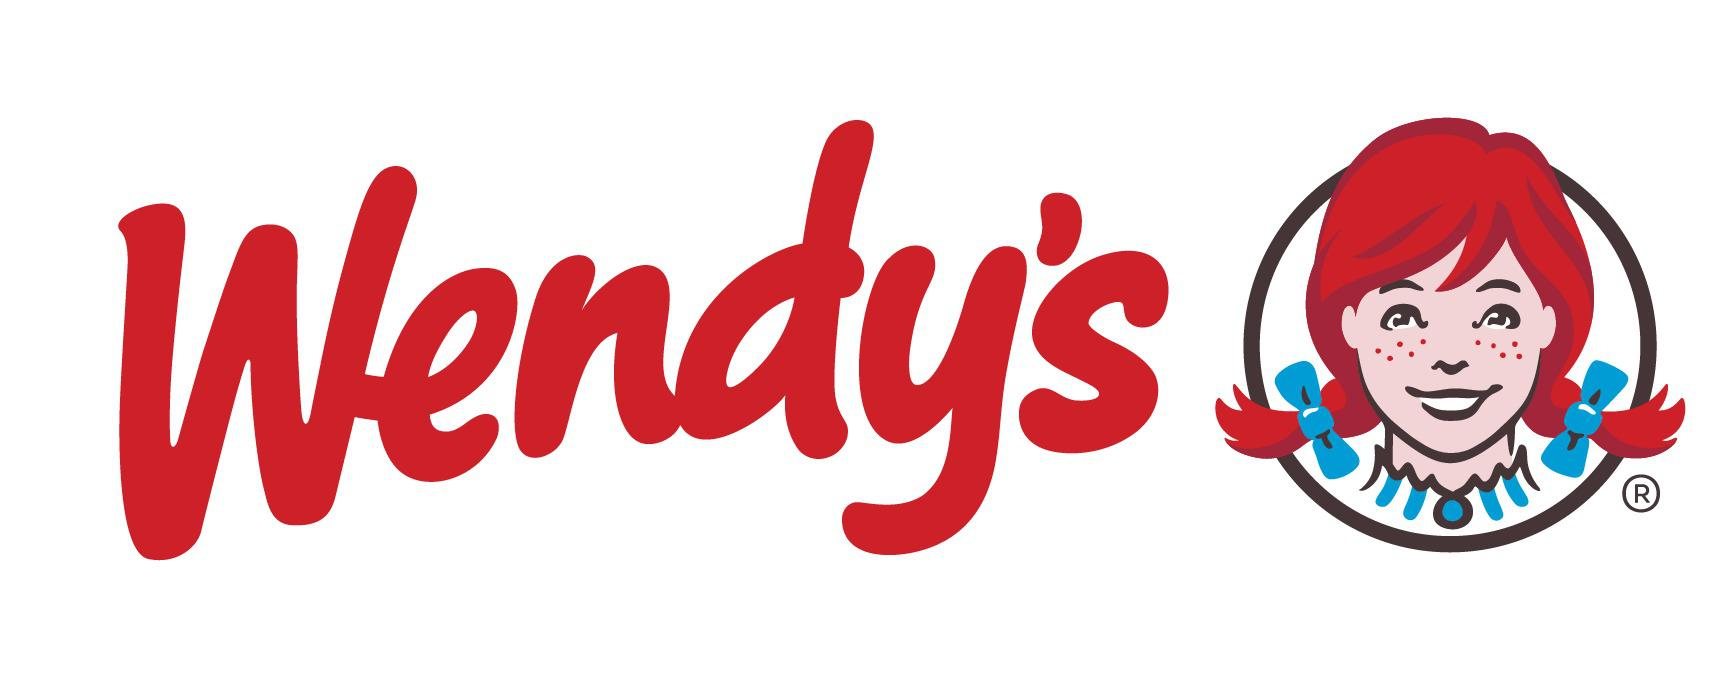 Wendy's | North Brand Cover